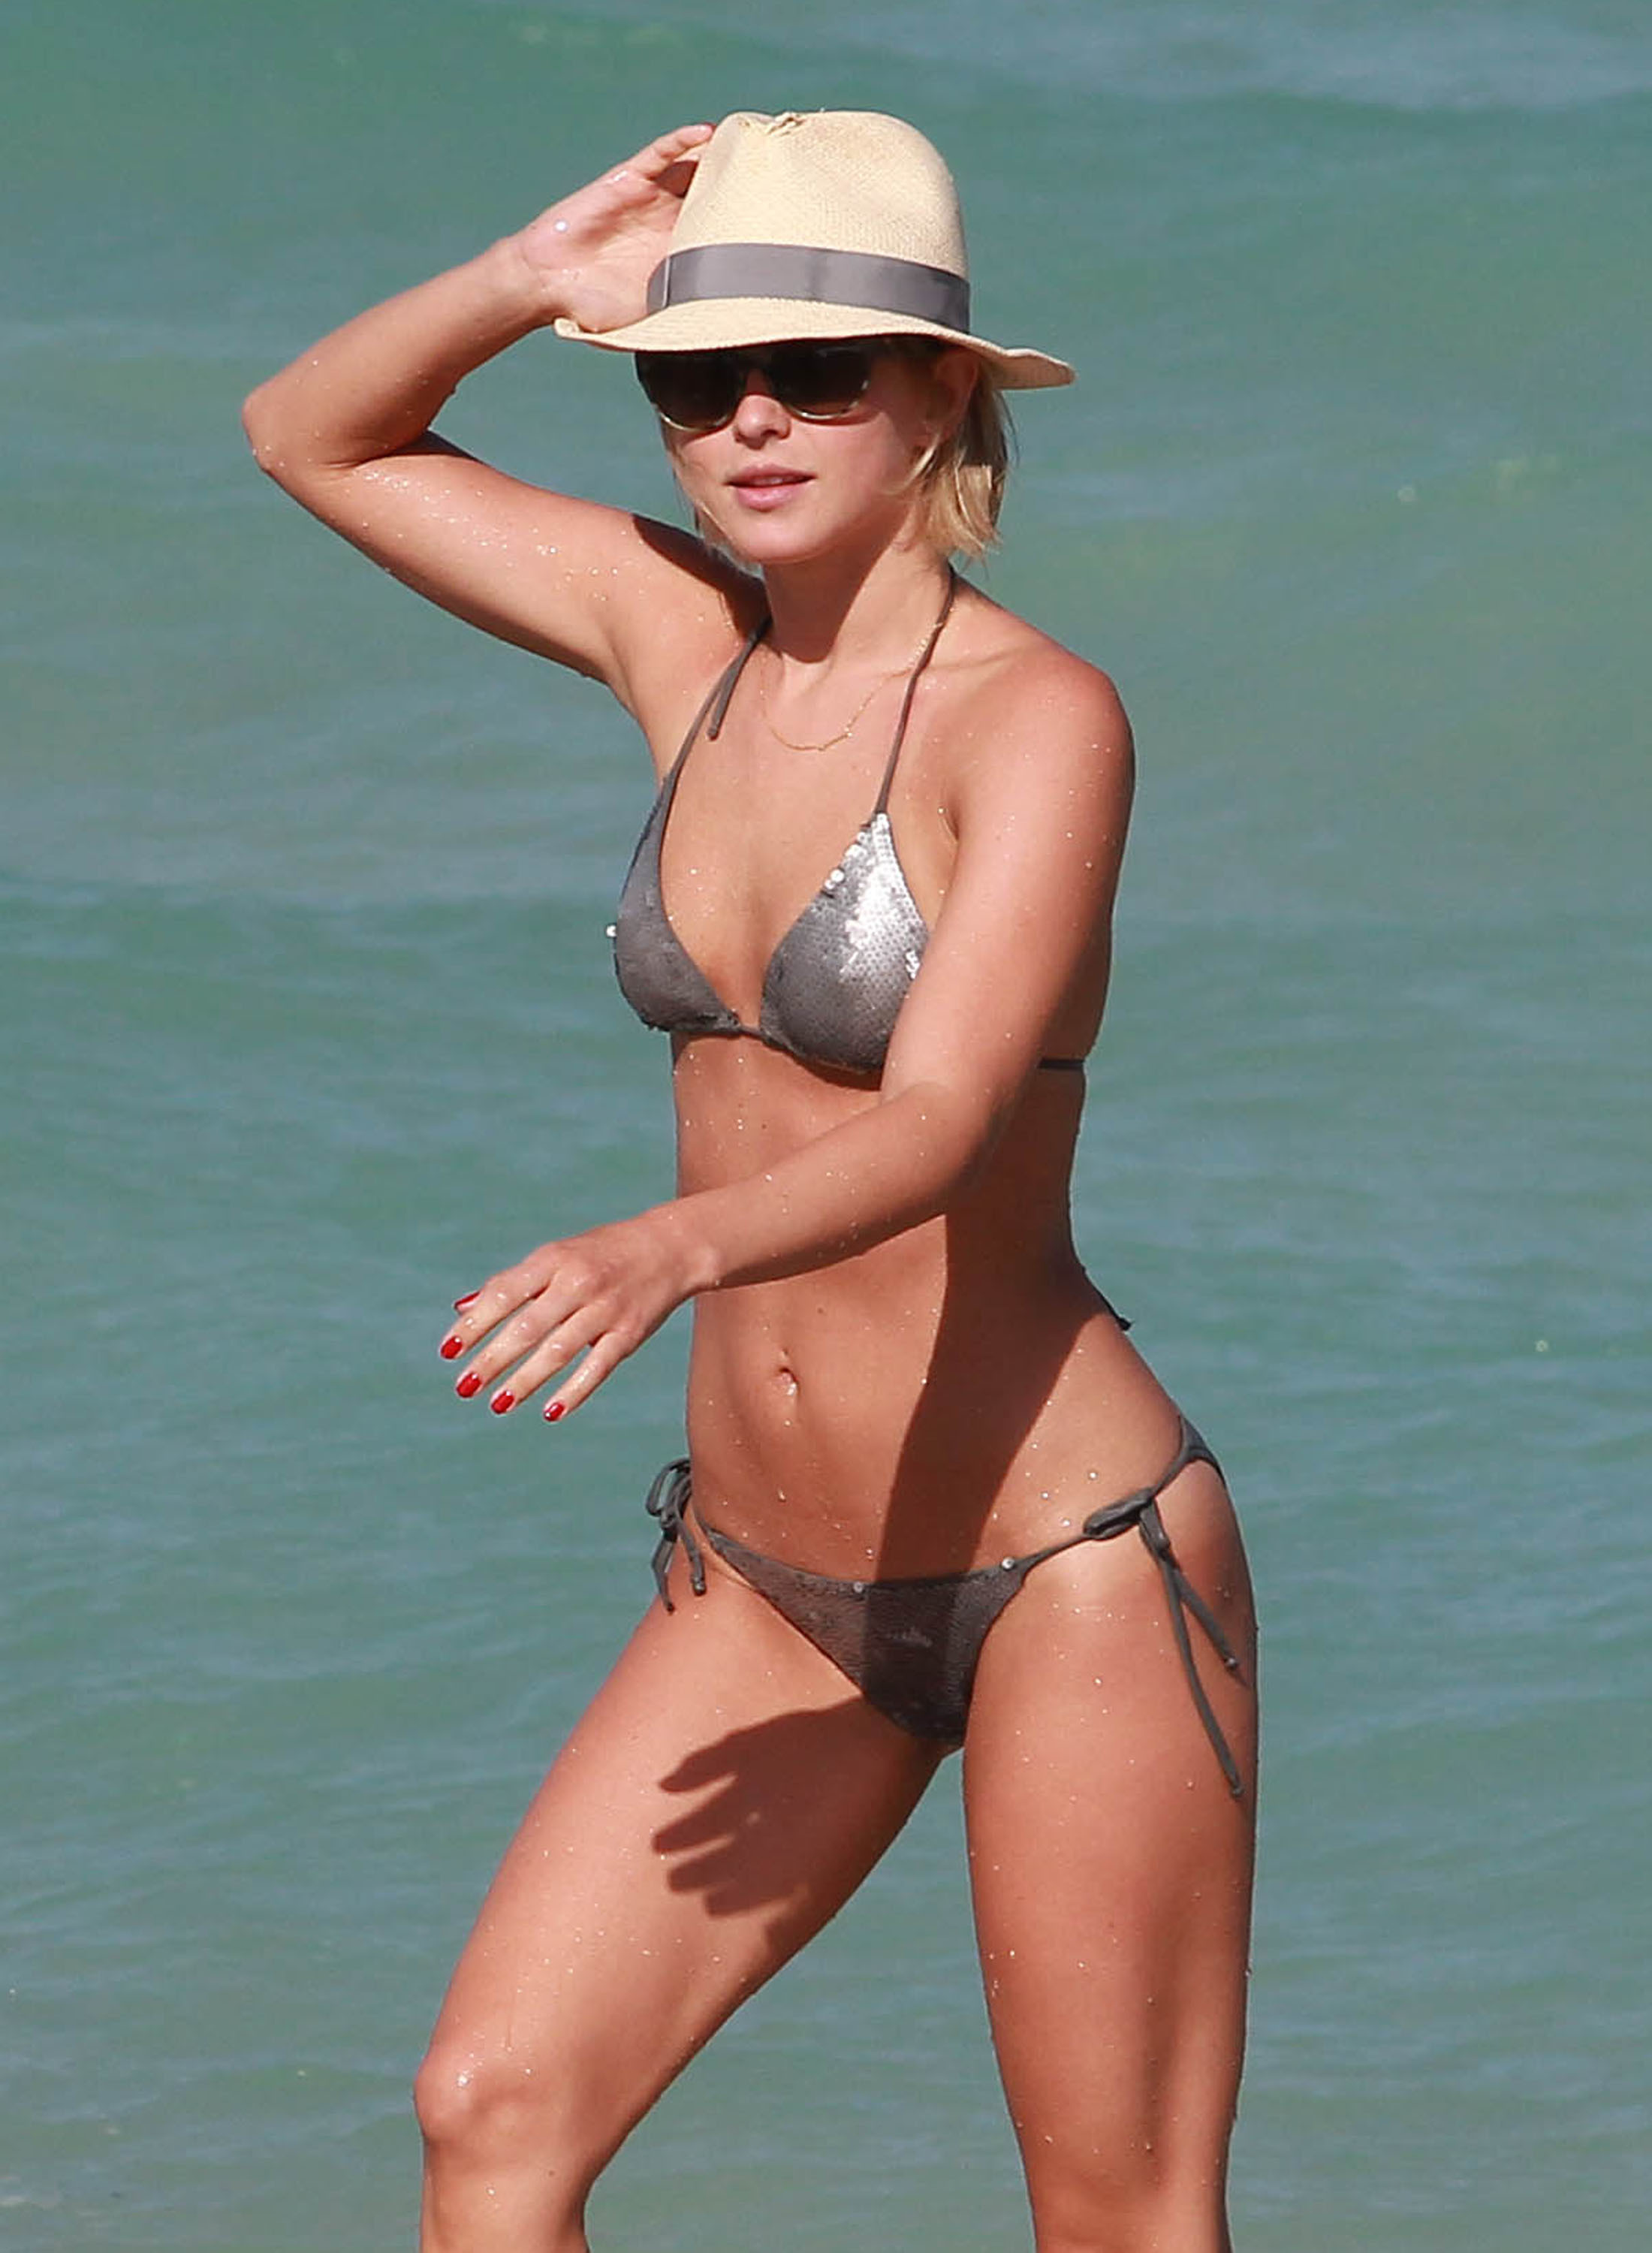 Julianne Hough bikini beach